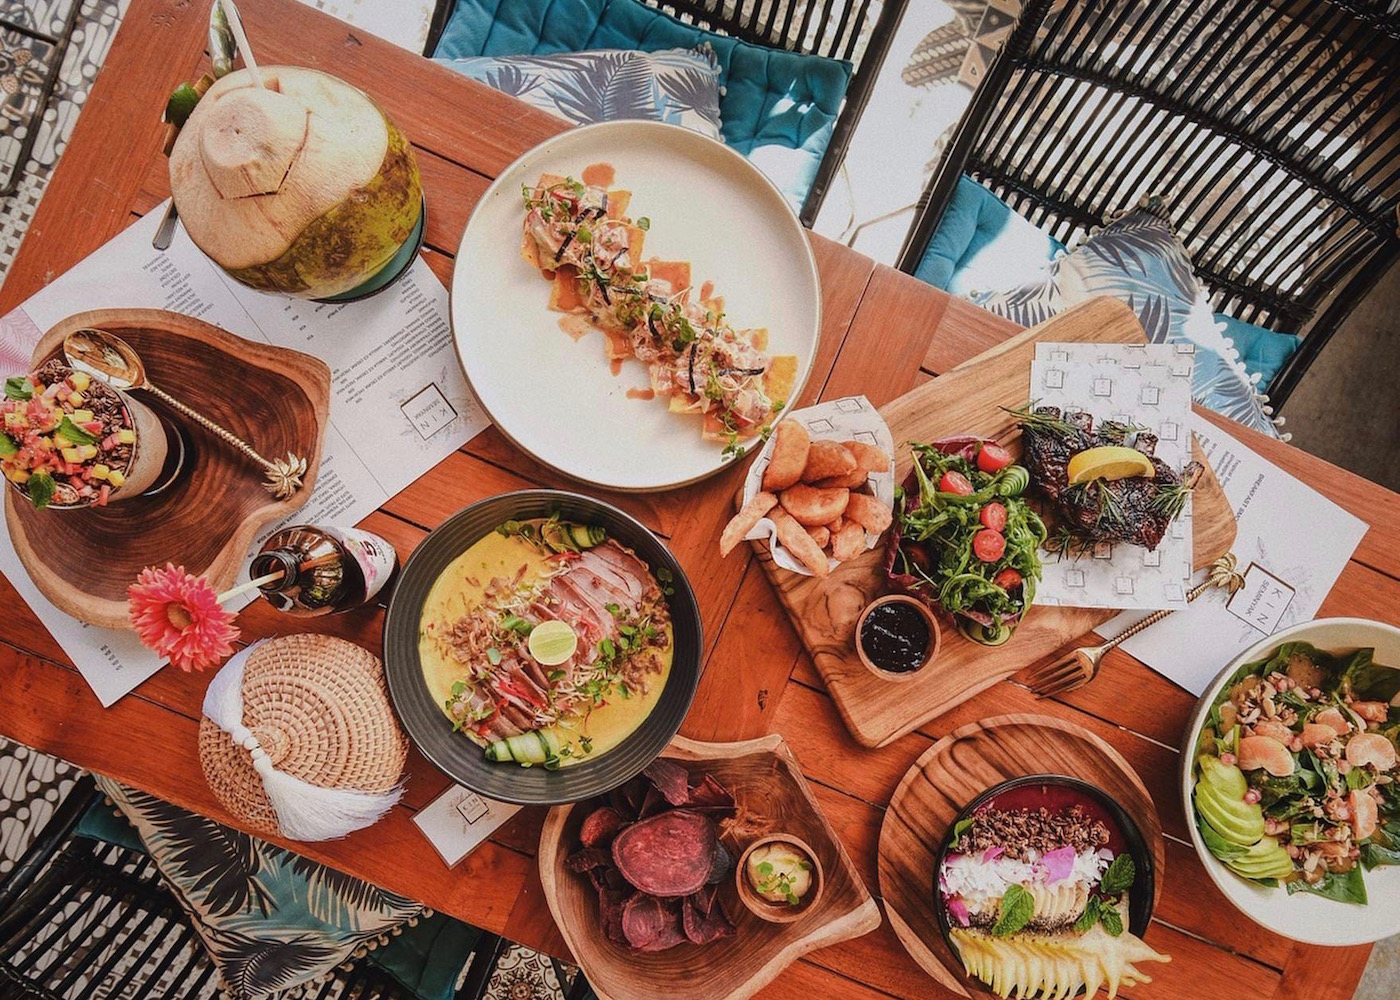 Food spread at KIN Seminyak - an all-day cafe and restaurant in Bali, Indonesia